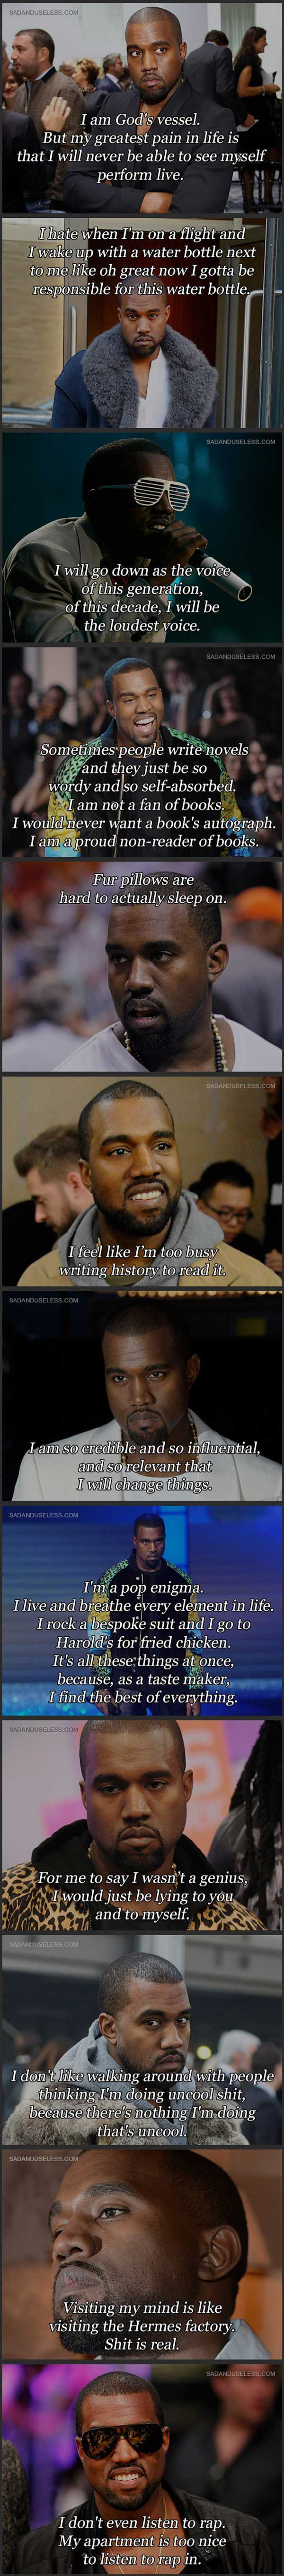 Kanye West quotes. I'm upvoting so more people can understand what a douchebag this guy is... #funny